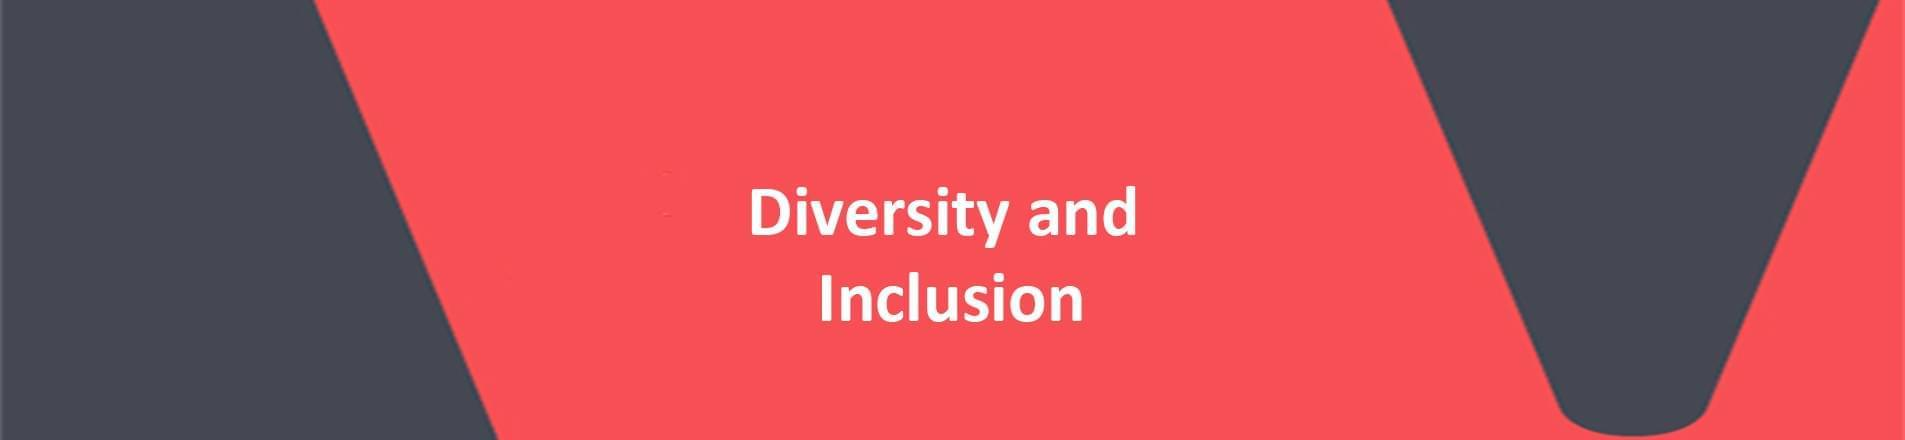 Image of the words Diversity and Inclusion on VERCIDA branded background